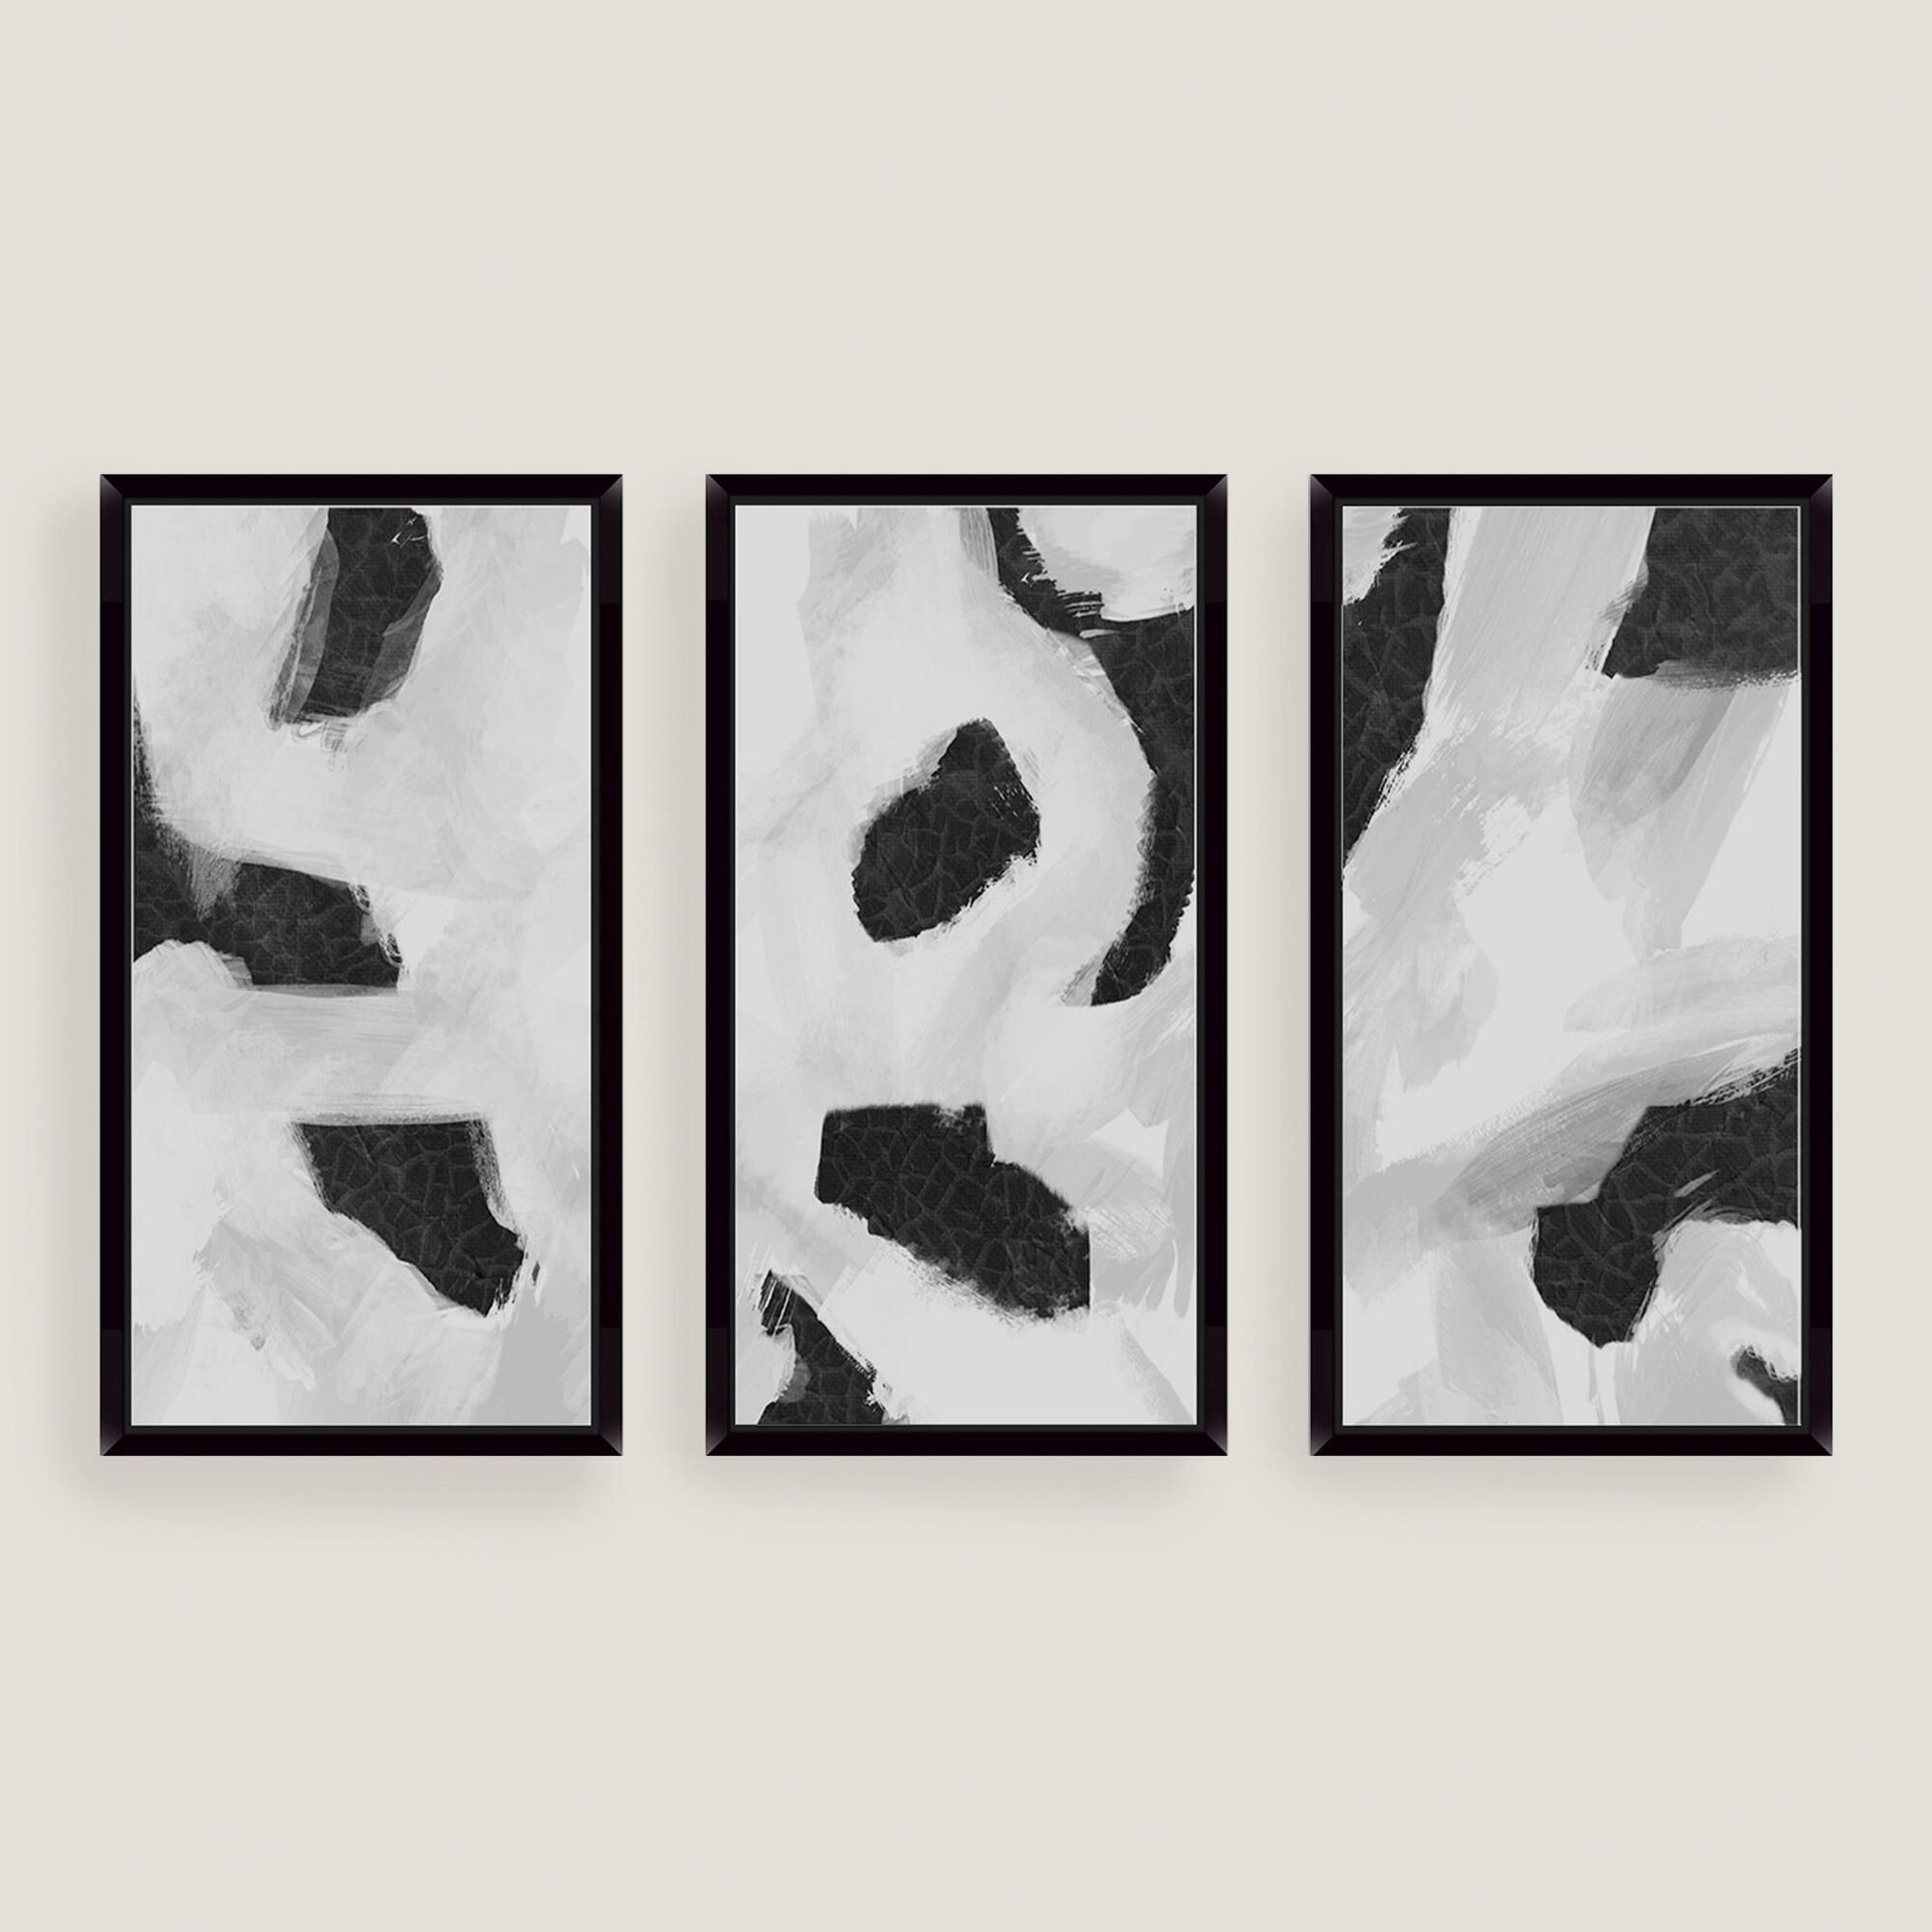 The Three Abstract Pieces Come Together To Create A Dramatic